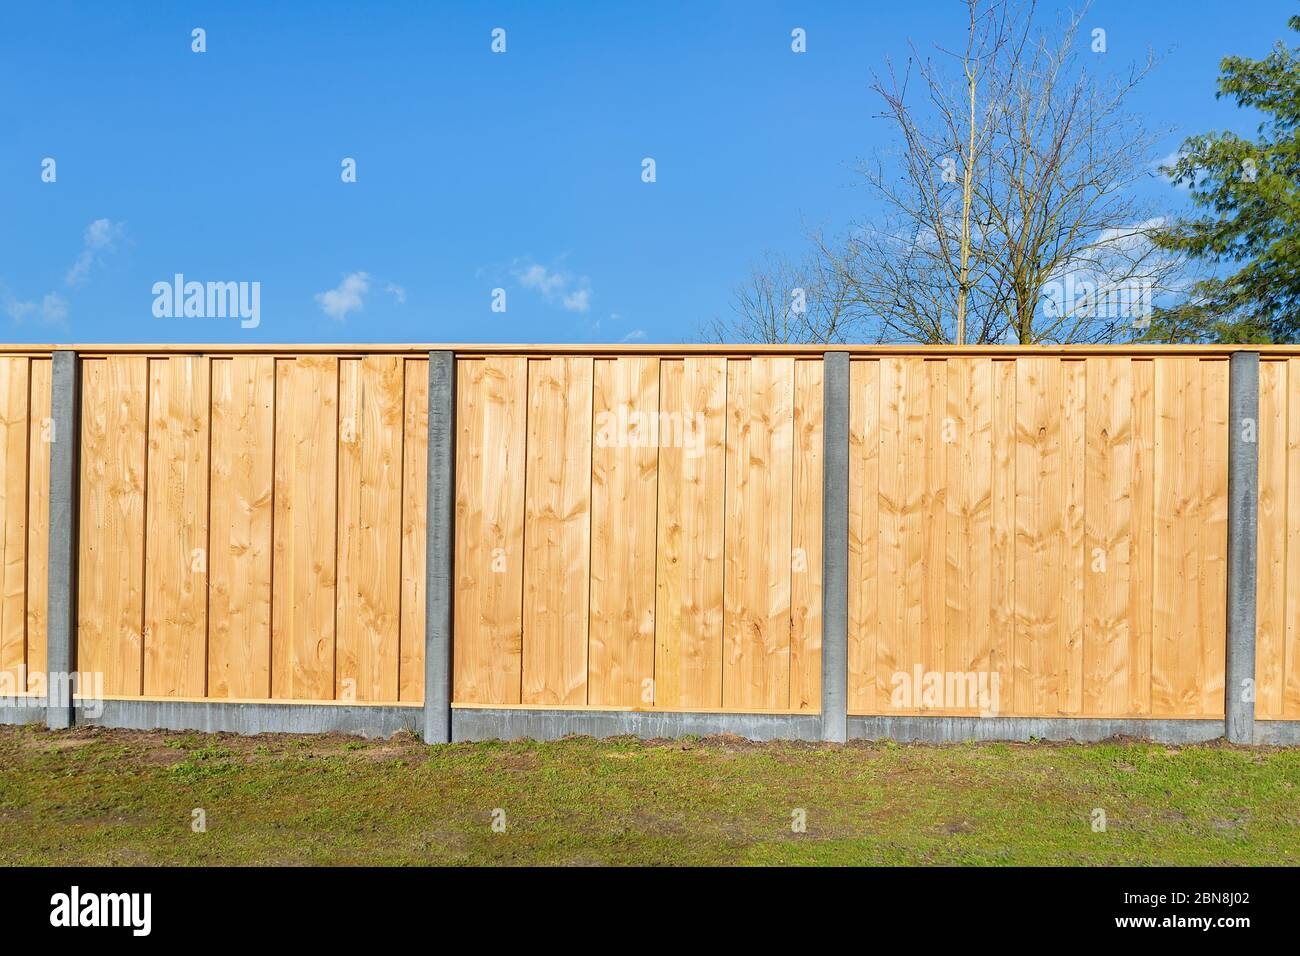 Picture of: Built New Horizontal Wooden Fence Construction In Dutch Backyard Stock Photo Alamy